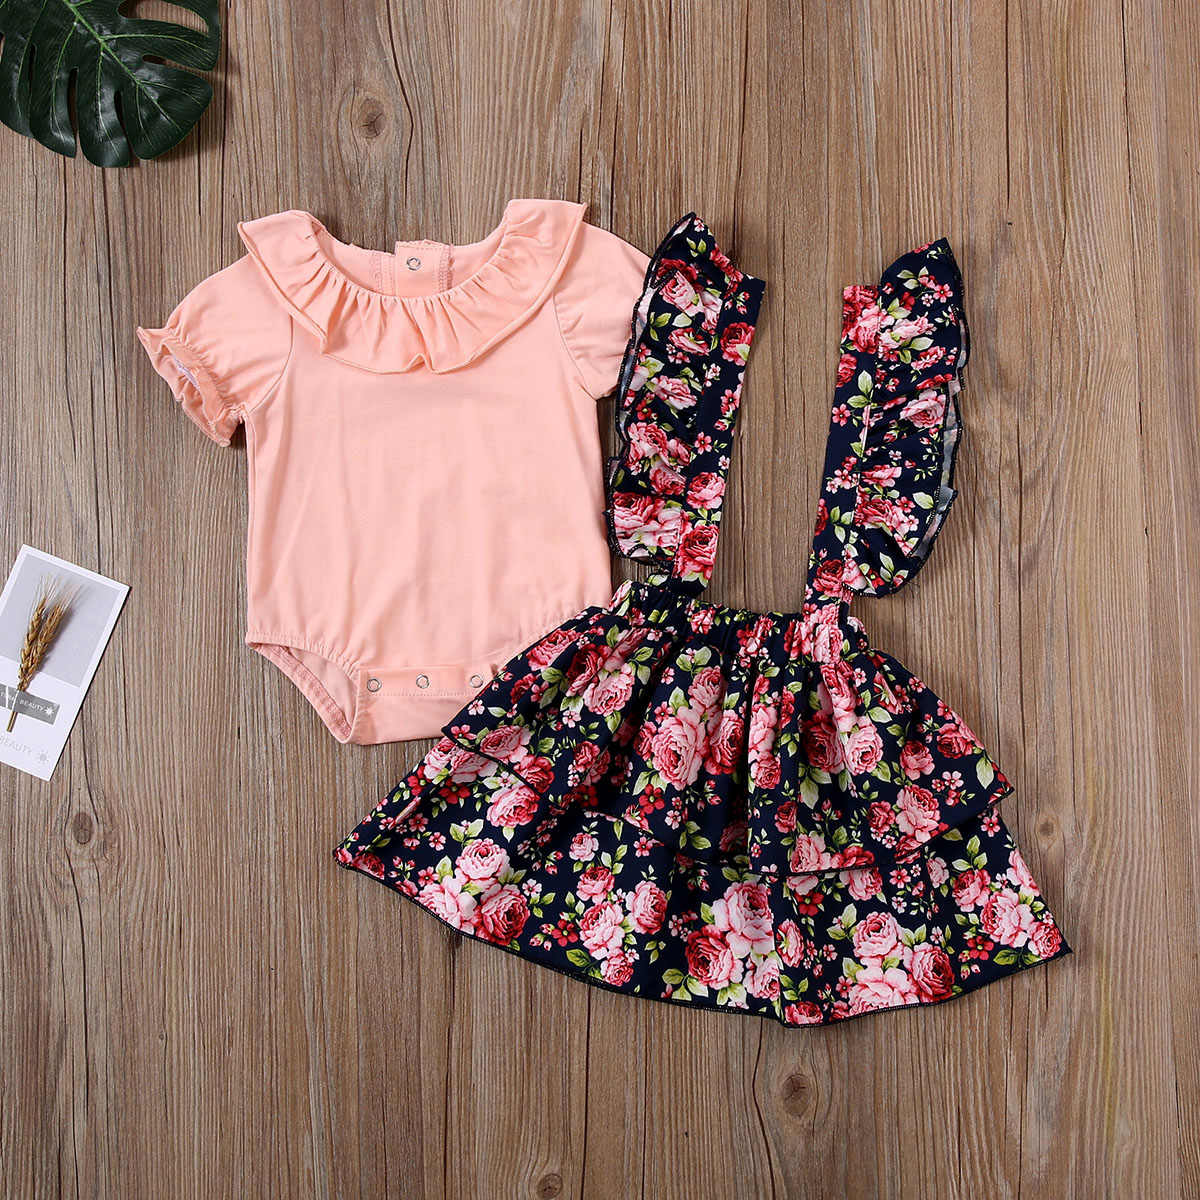 Toddler Baby Girl Clothes Overall Dress Yellow Shirt Floral Suspender Skirt Set 2-6T